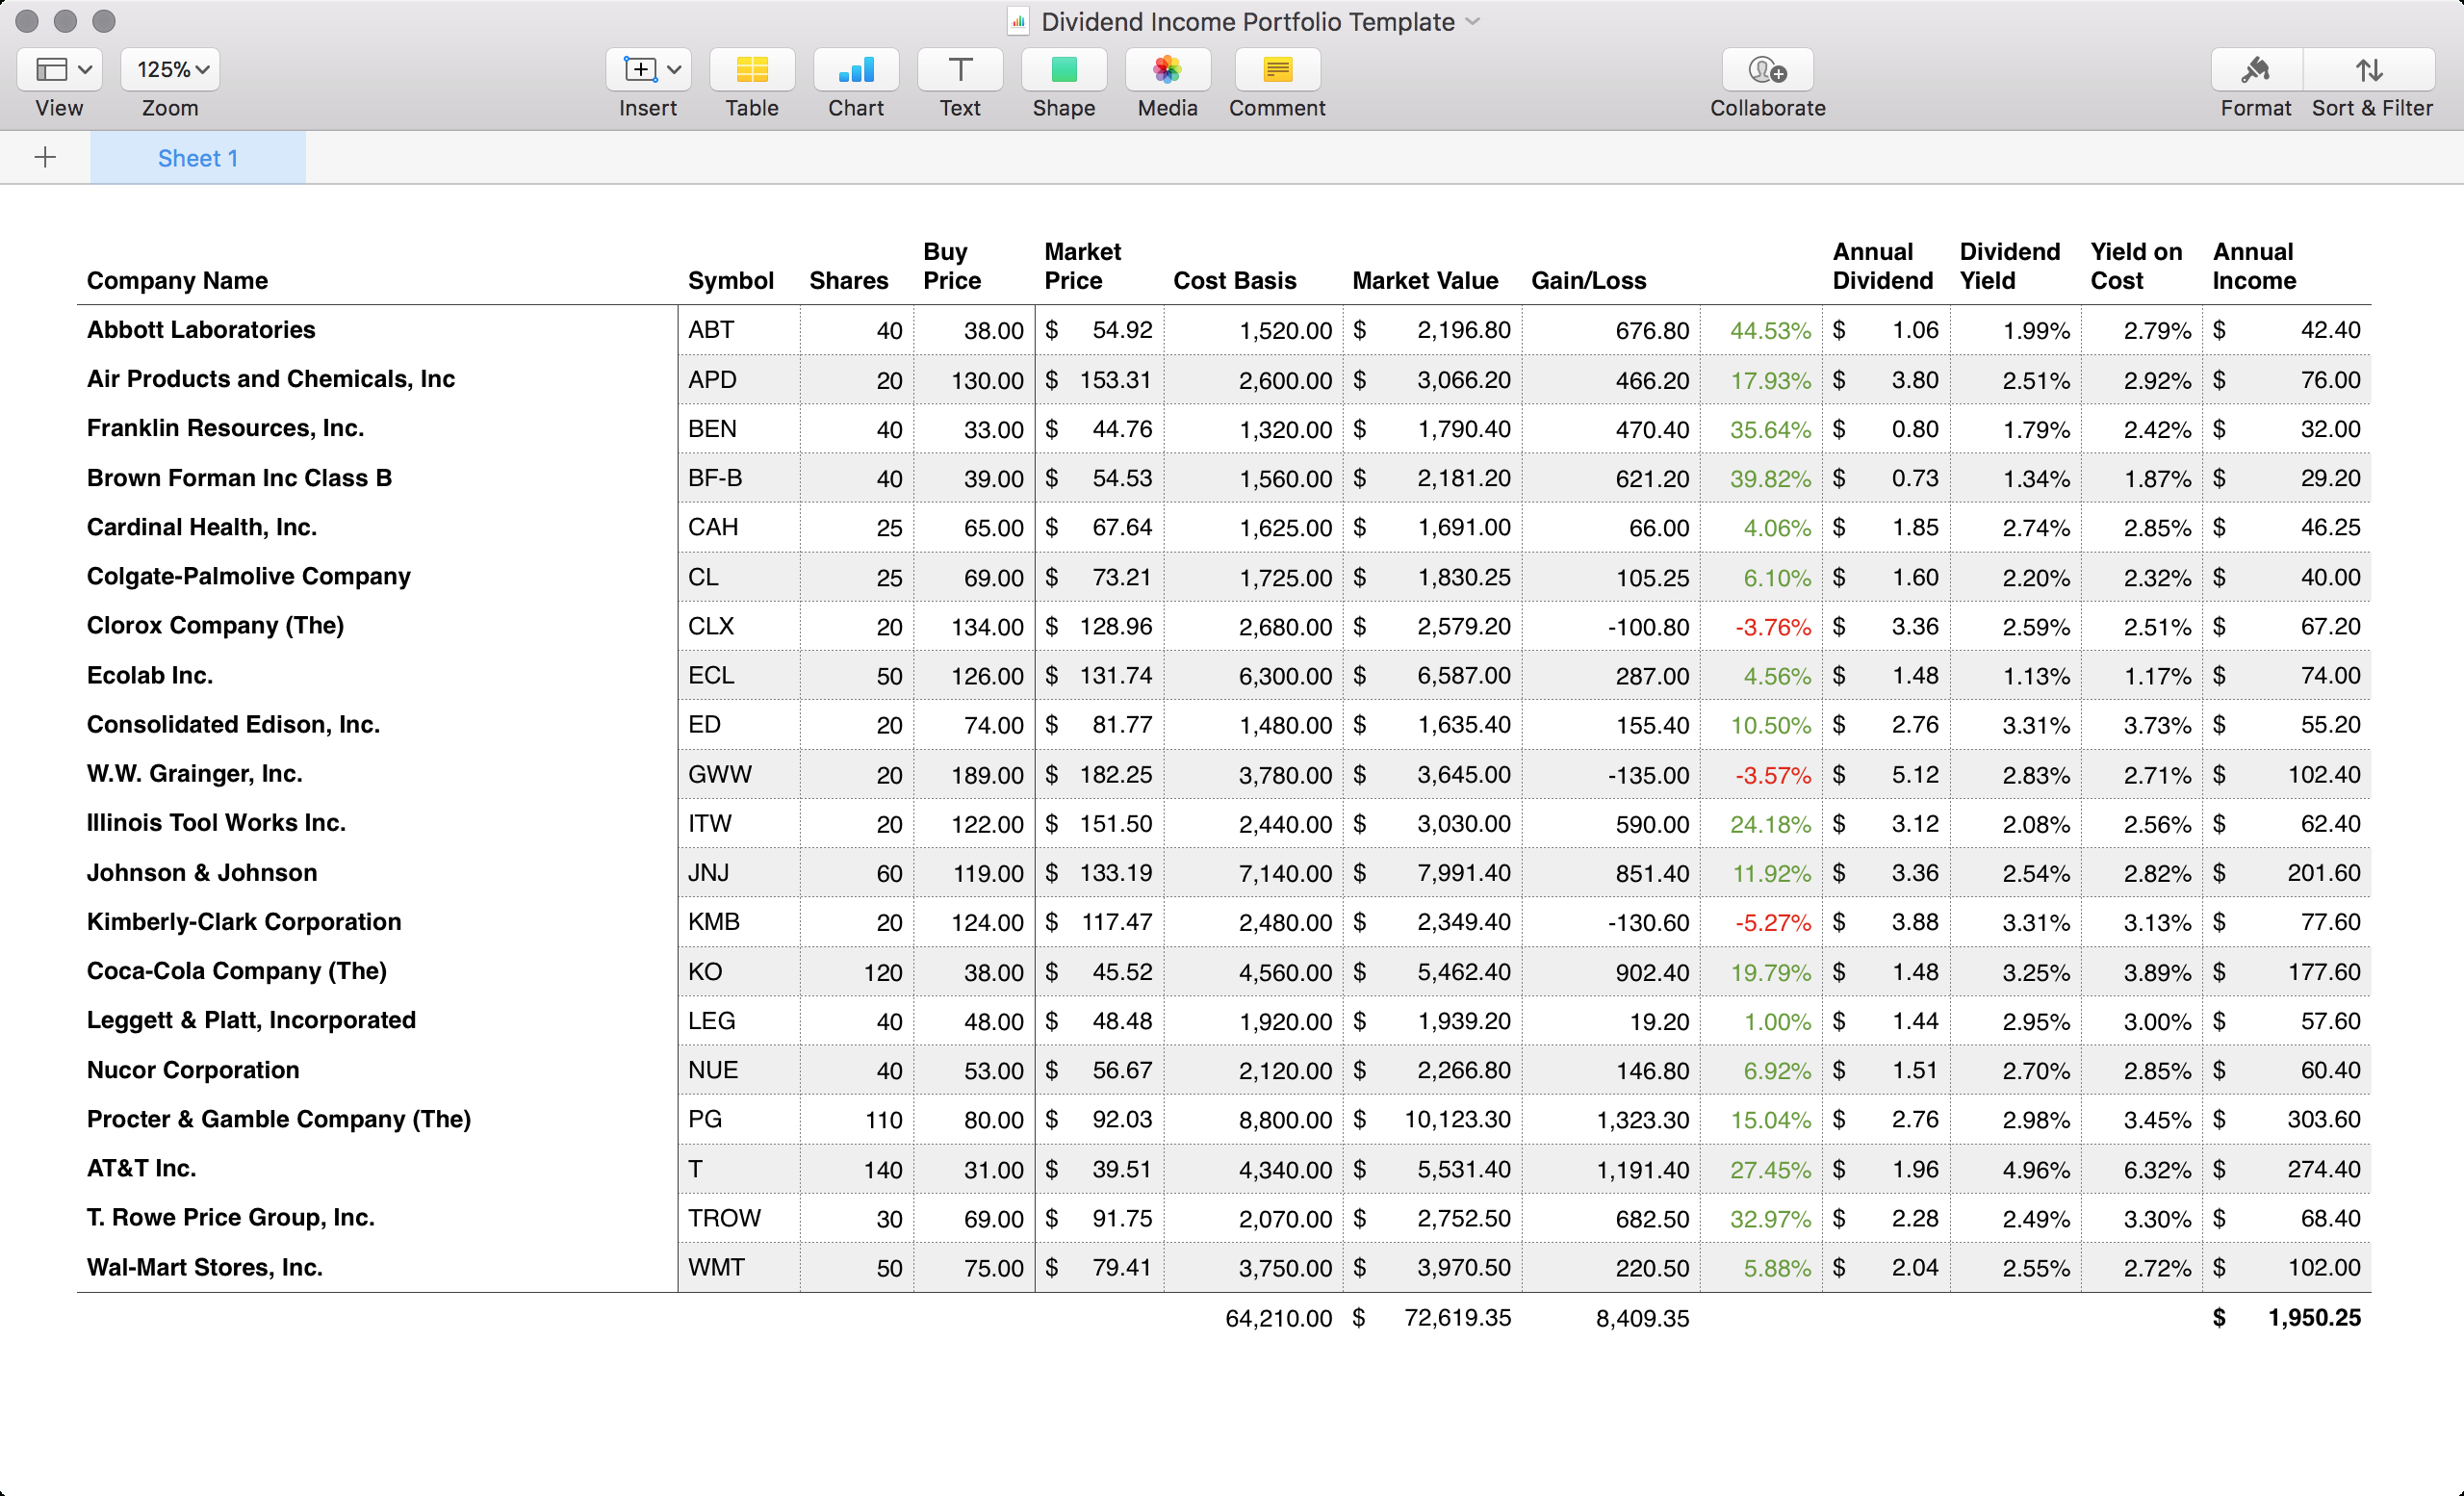 Dividend Spreadsheet Templates Pertaining To Dividend Income Portfolio Template For Apple Numbers Dividend Spreadsheet Templates Printable Spreadshee Printable Spreadshee dividend spreadsheet templates